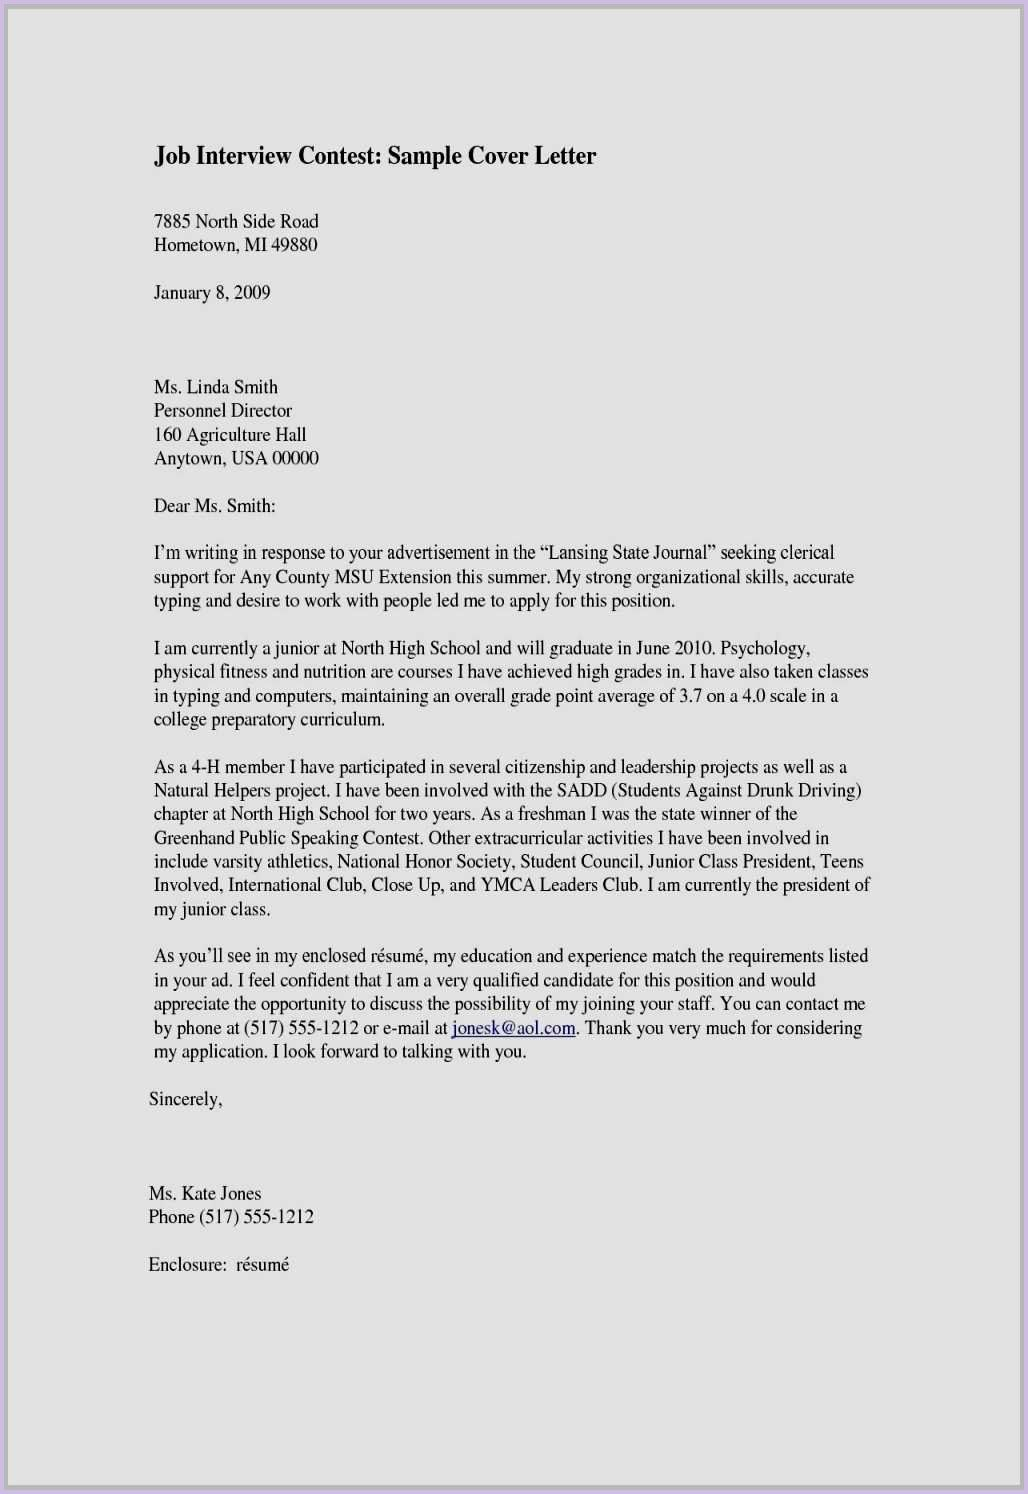 Cover Letter Template No Name With Images Resume Cover Letter